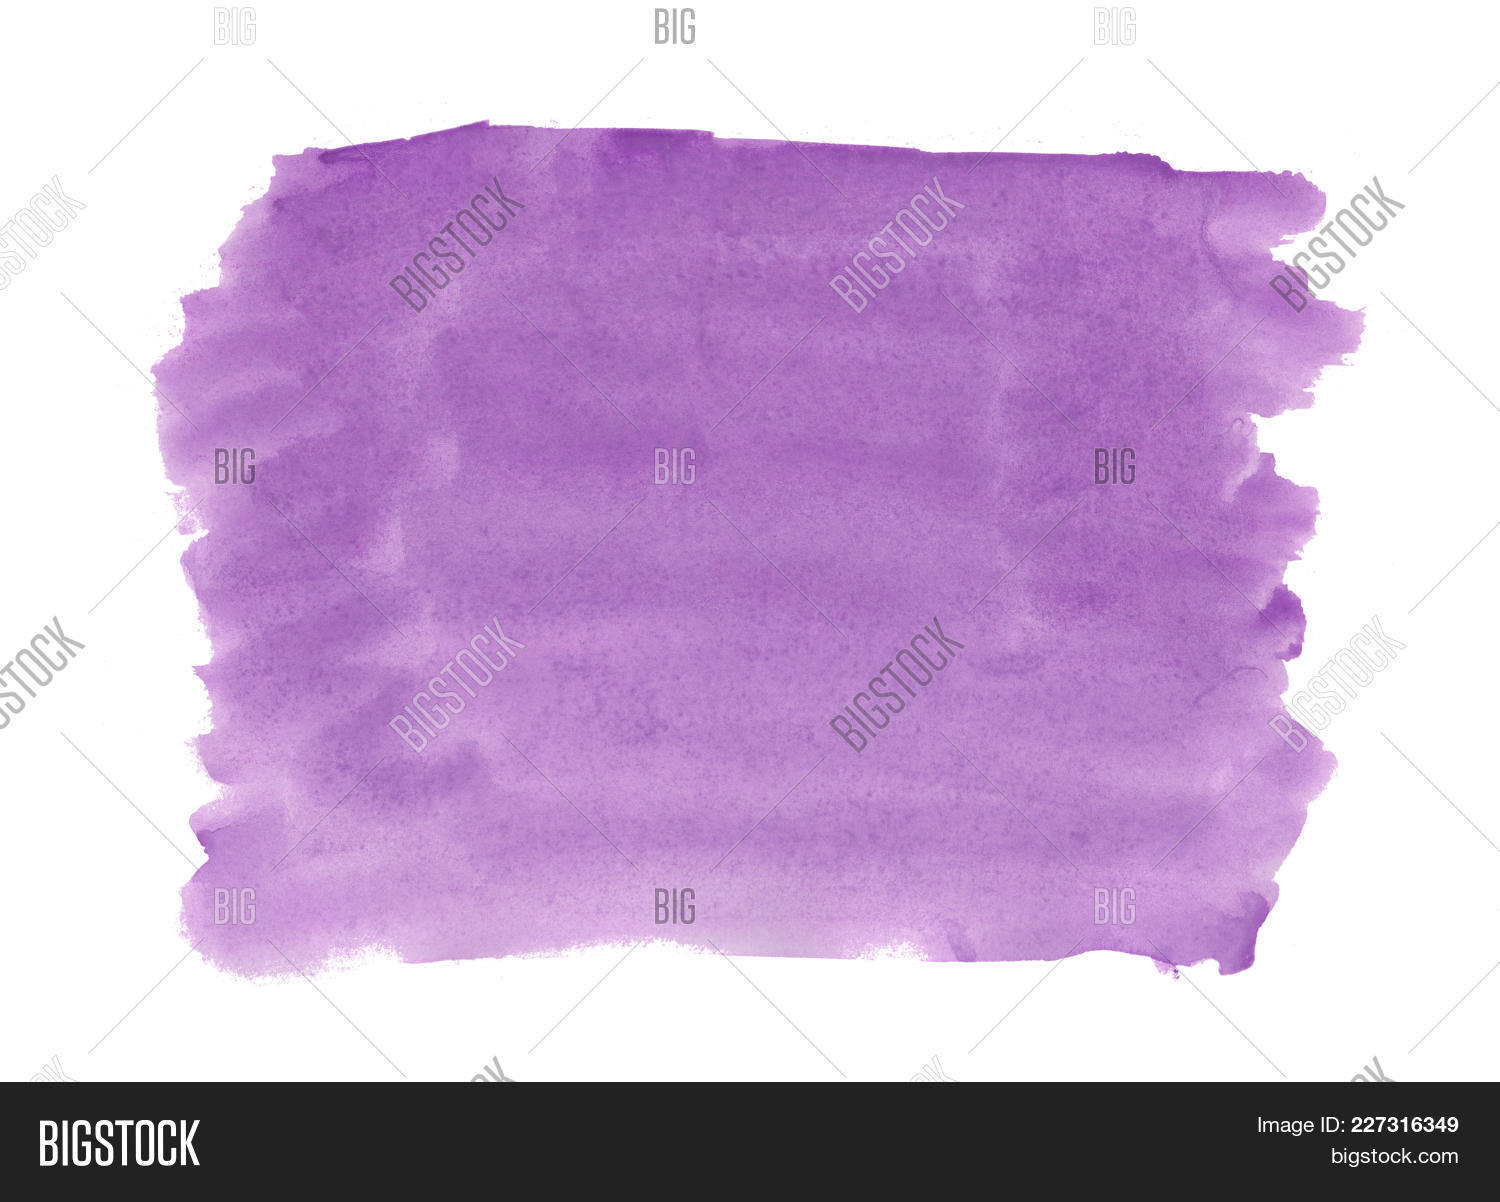 Abstract Texture Brush Image Photo Free Trial Bigstock